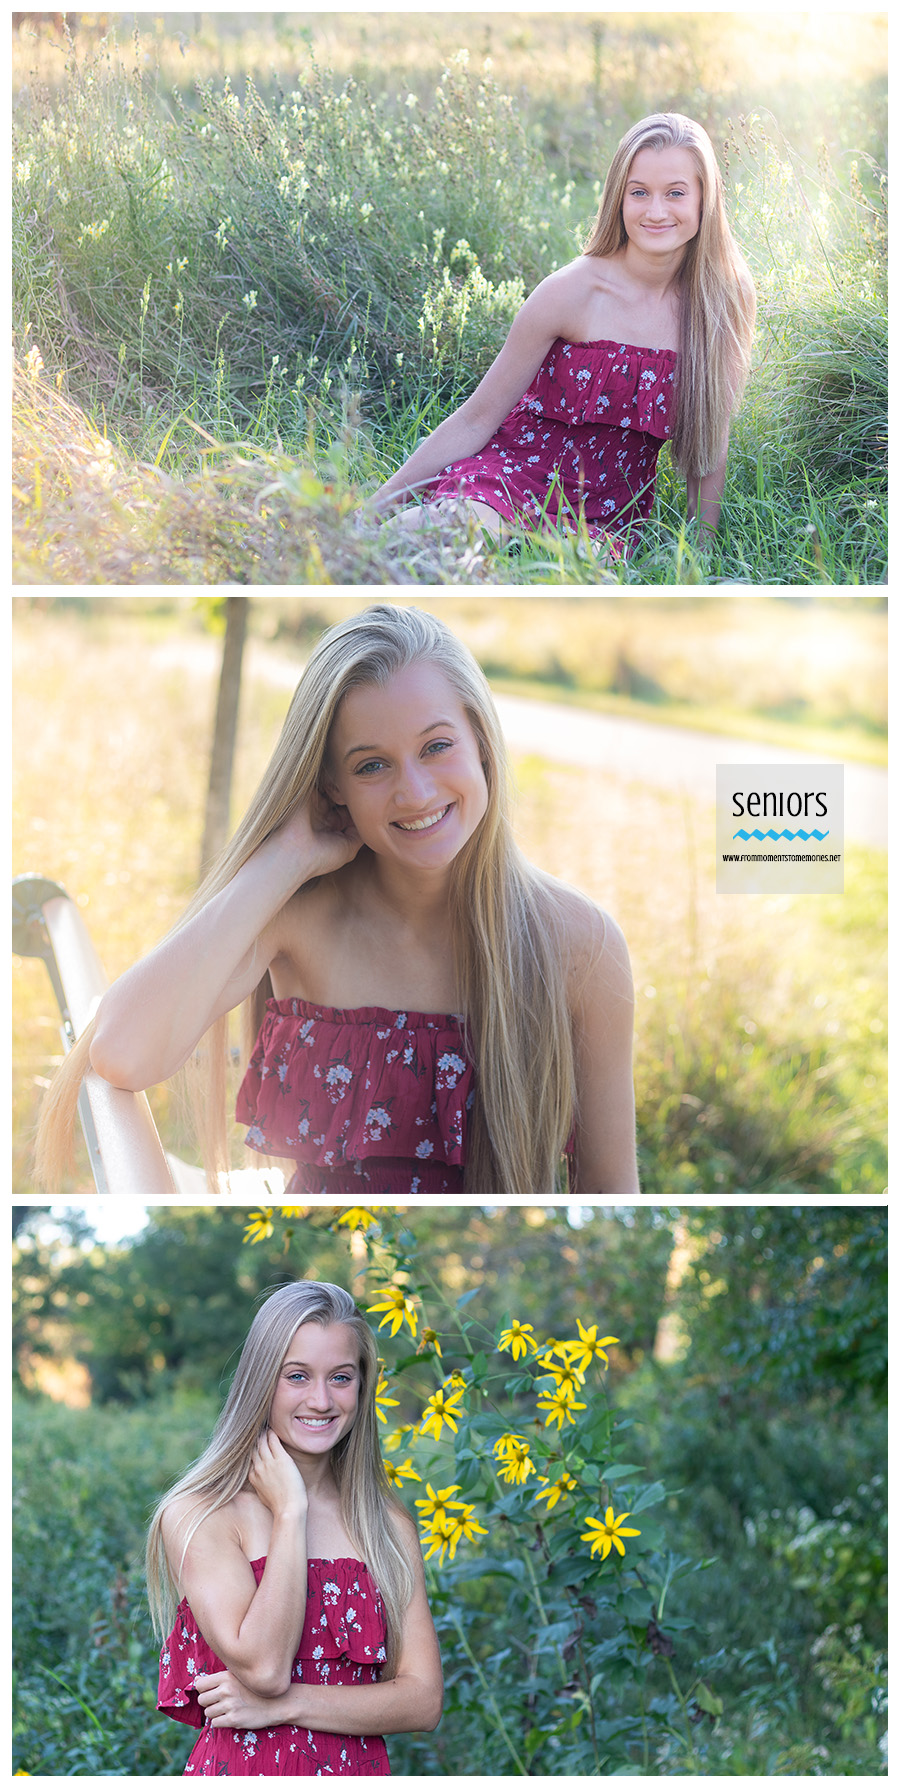 golden hour and wildflower senior photos taken of a girl in elk river, minnesota